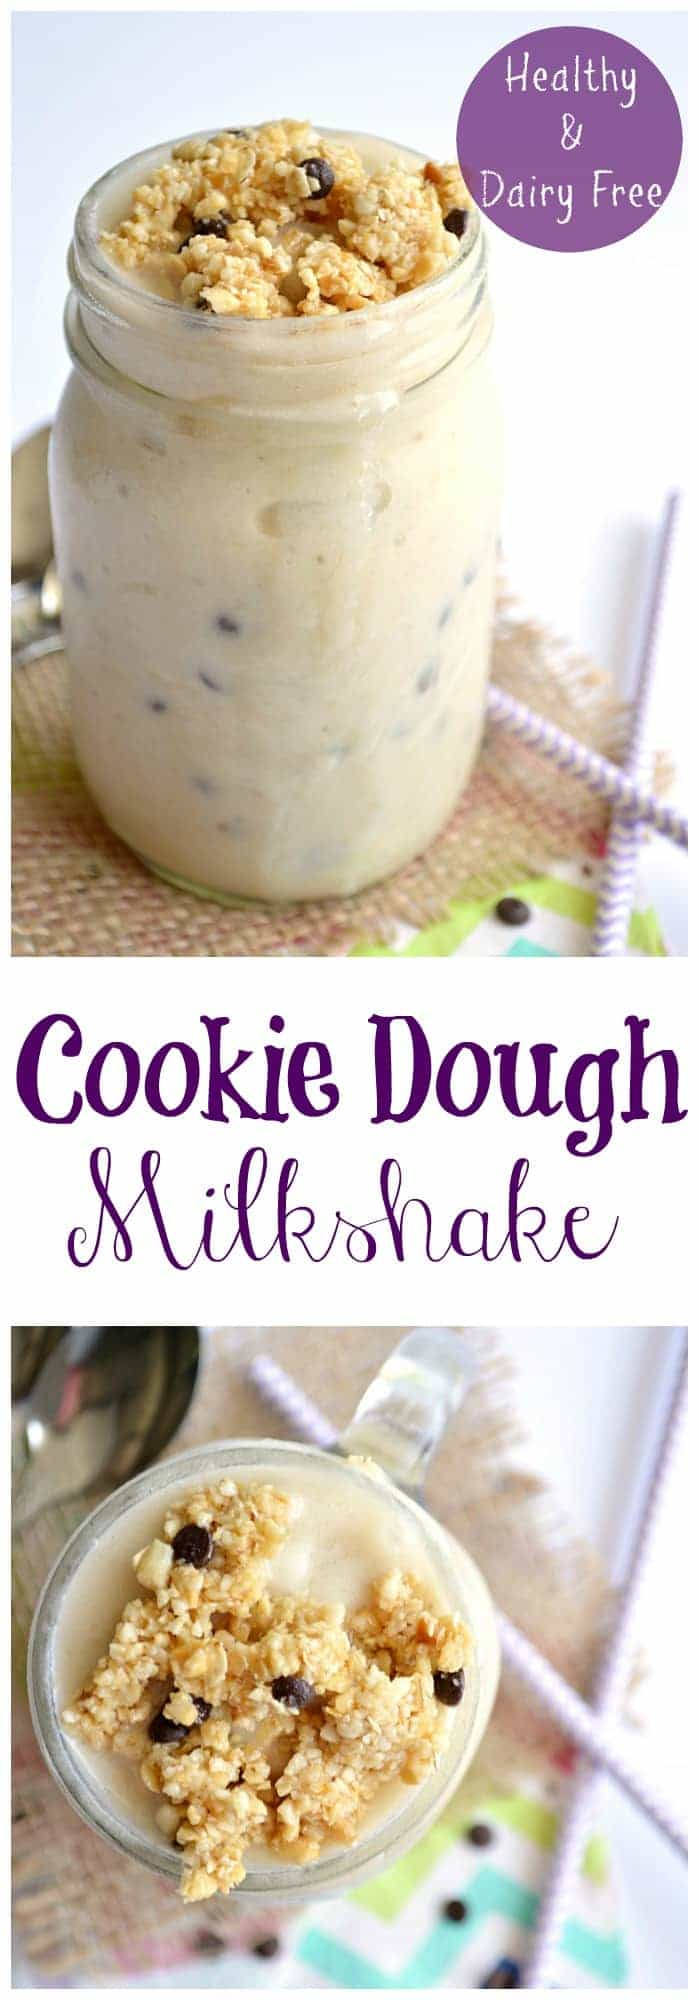 Cookie Dough Milkshake.  This healthy and dairy free dessert is the perfect guilt free way to cool off this summer!